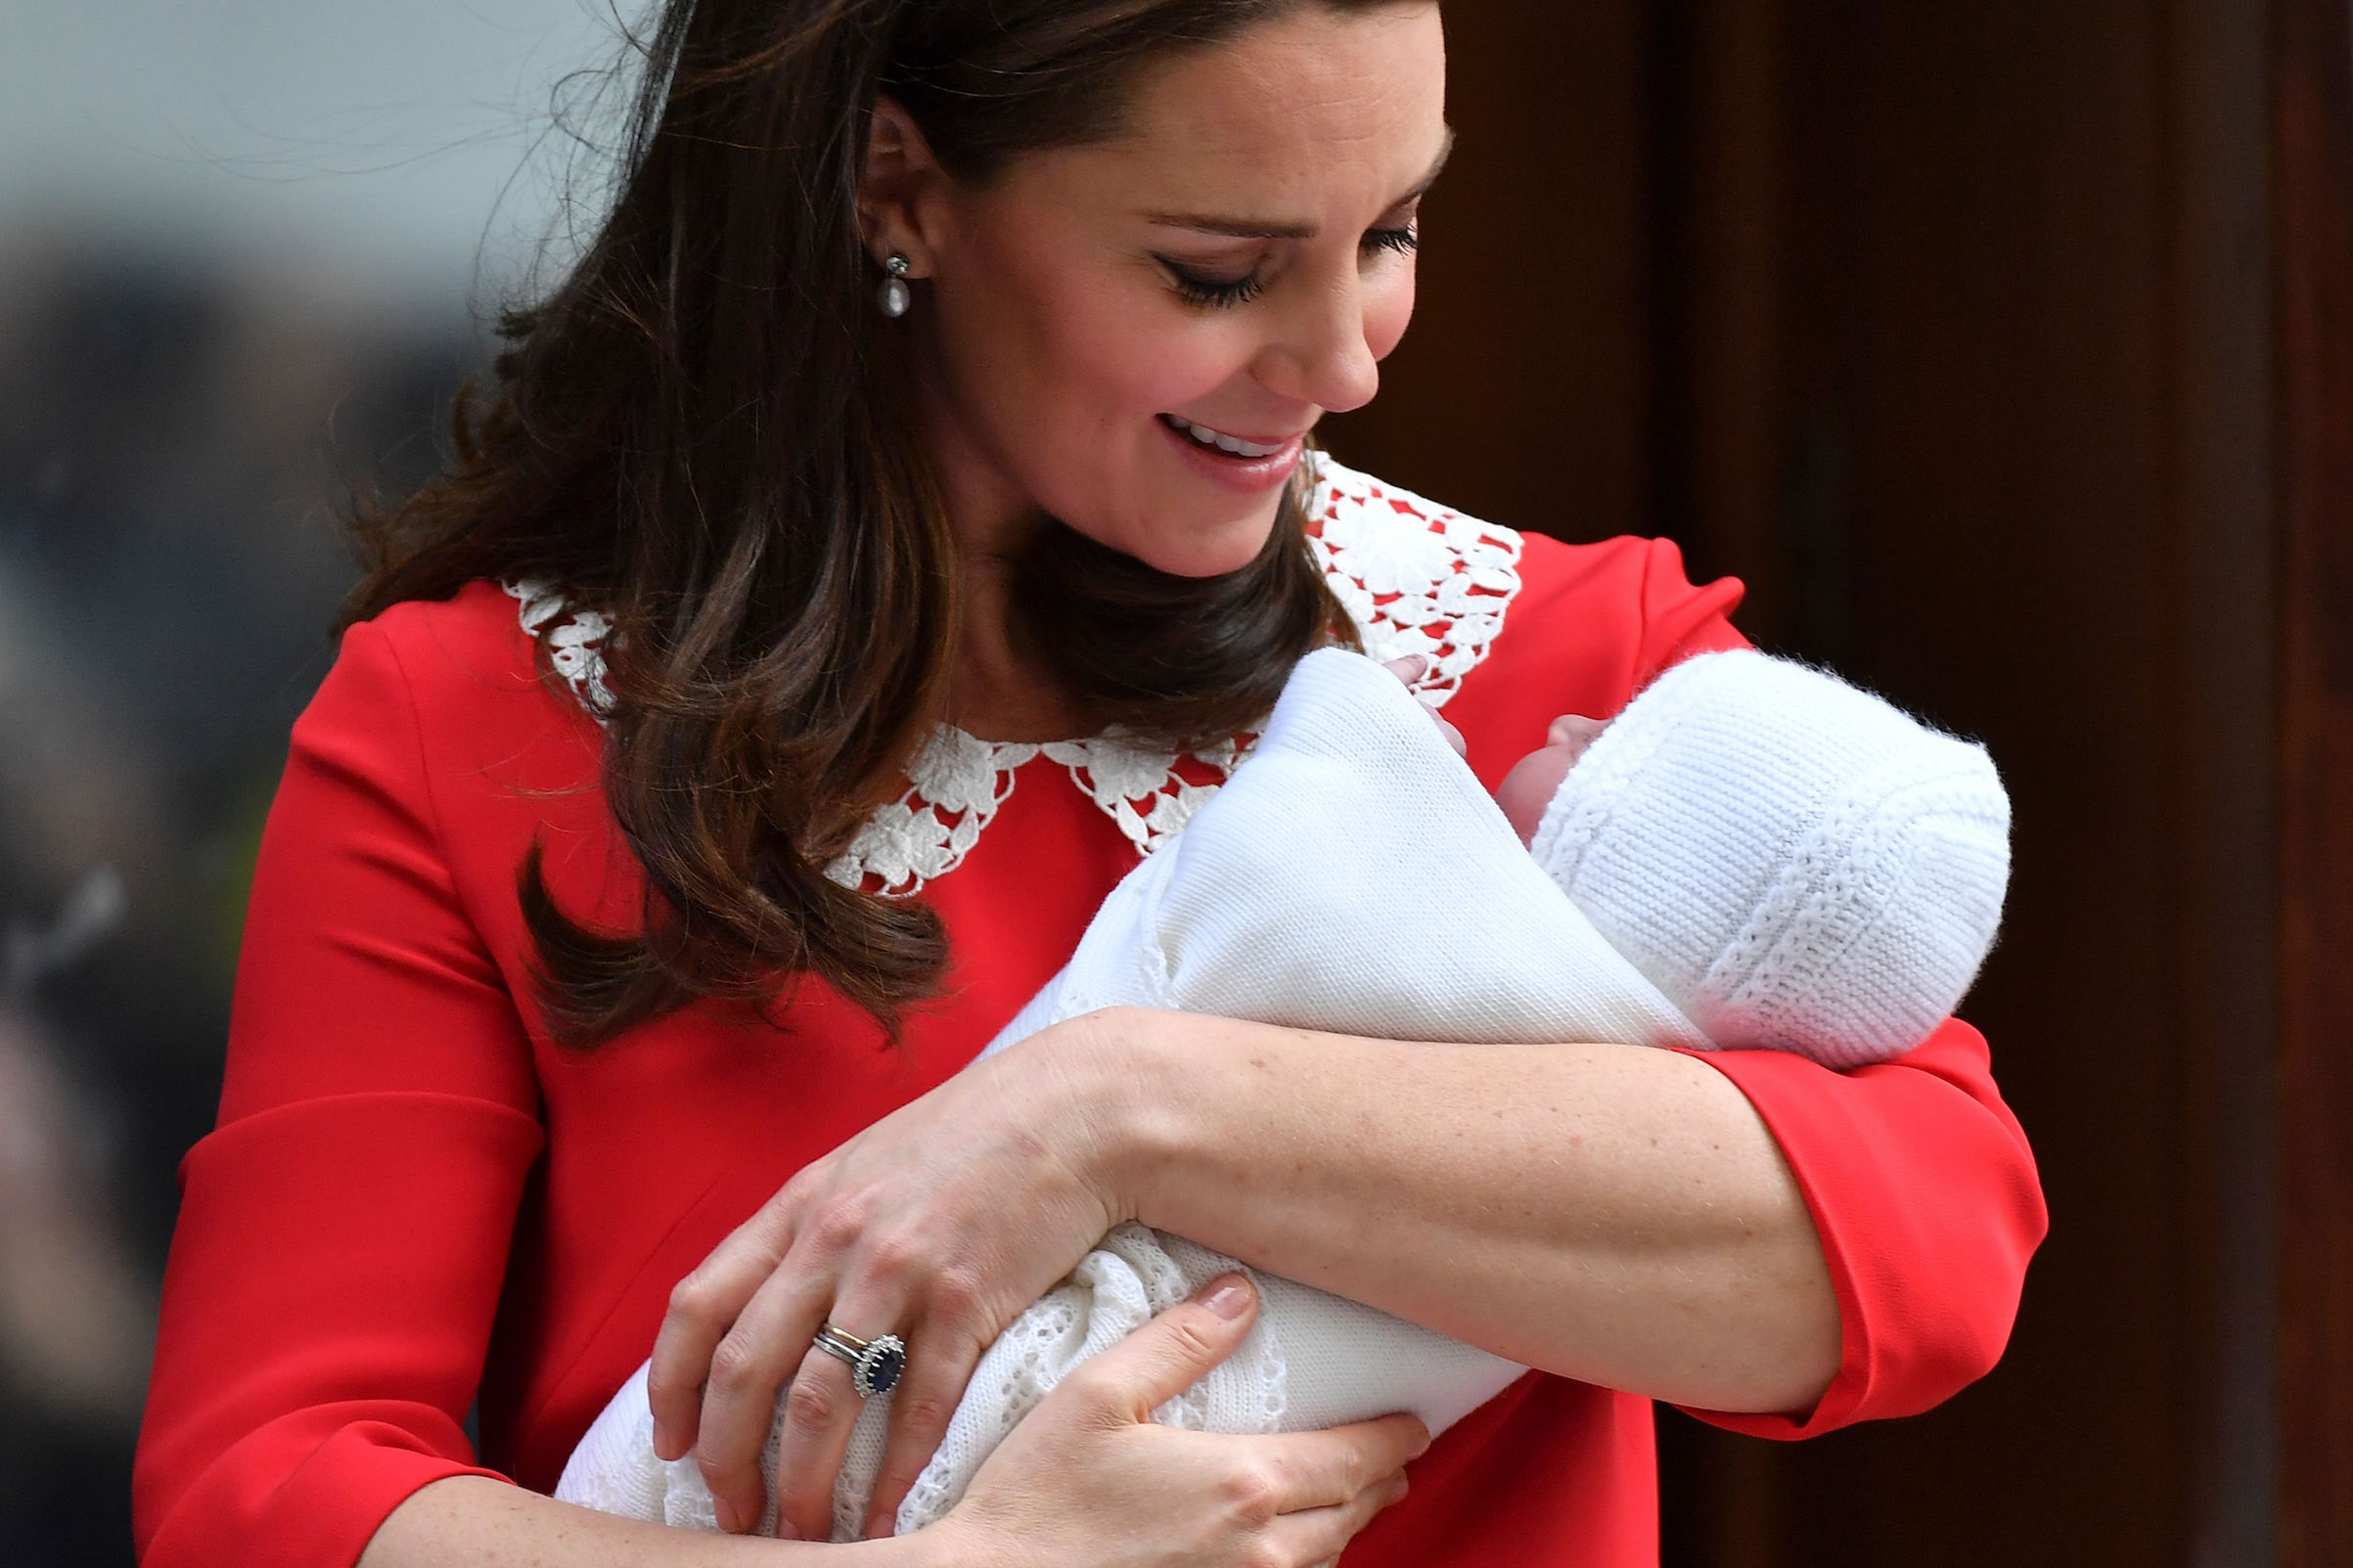 Britain's Catherine, Duchess of Cambridge aka Kate Middleton looks at her newly-born son, her third child, Britain's Prince Louis of Cambridge on the steps of the Lindo Wing at St Mary's Hospital in central London, on April 23, 2018.